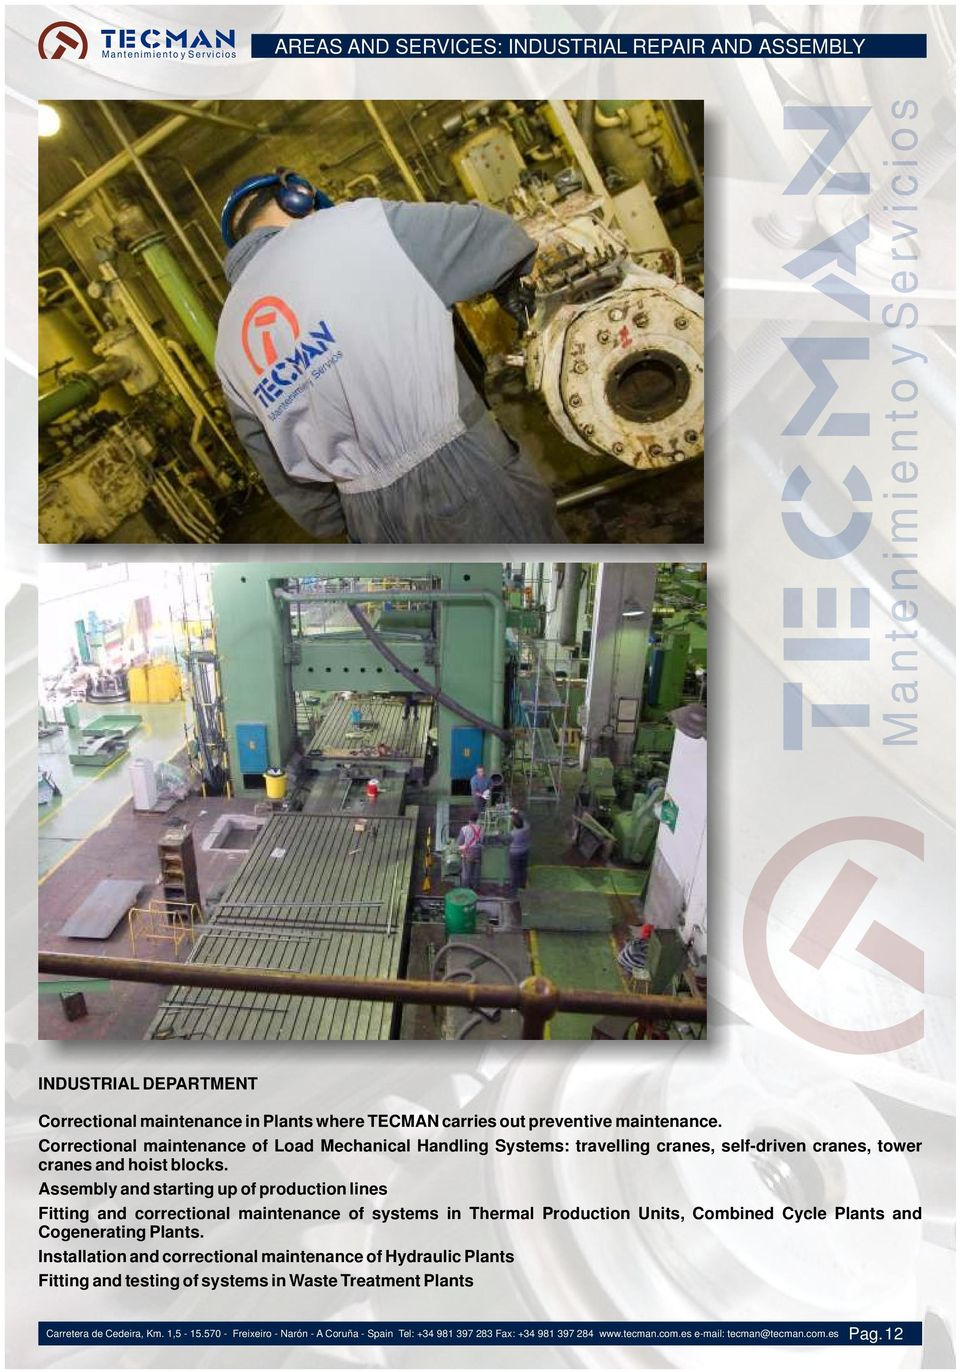 Assembly and starting up of production lines Fitting and correctional maintenance of systems in Thermal Production Units, Combined Cycle Plants